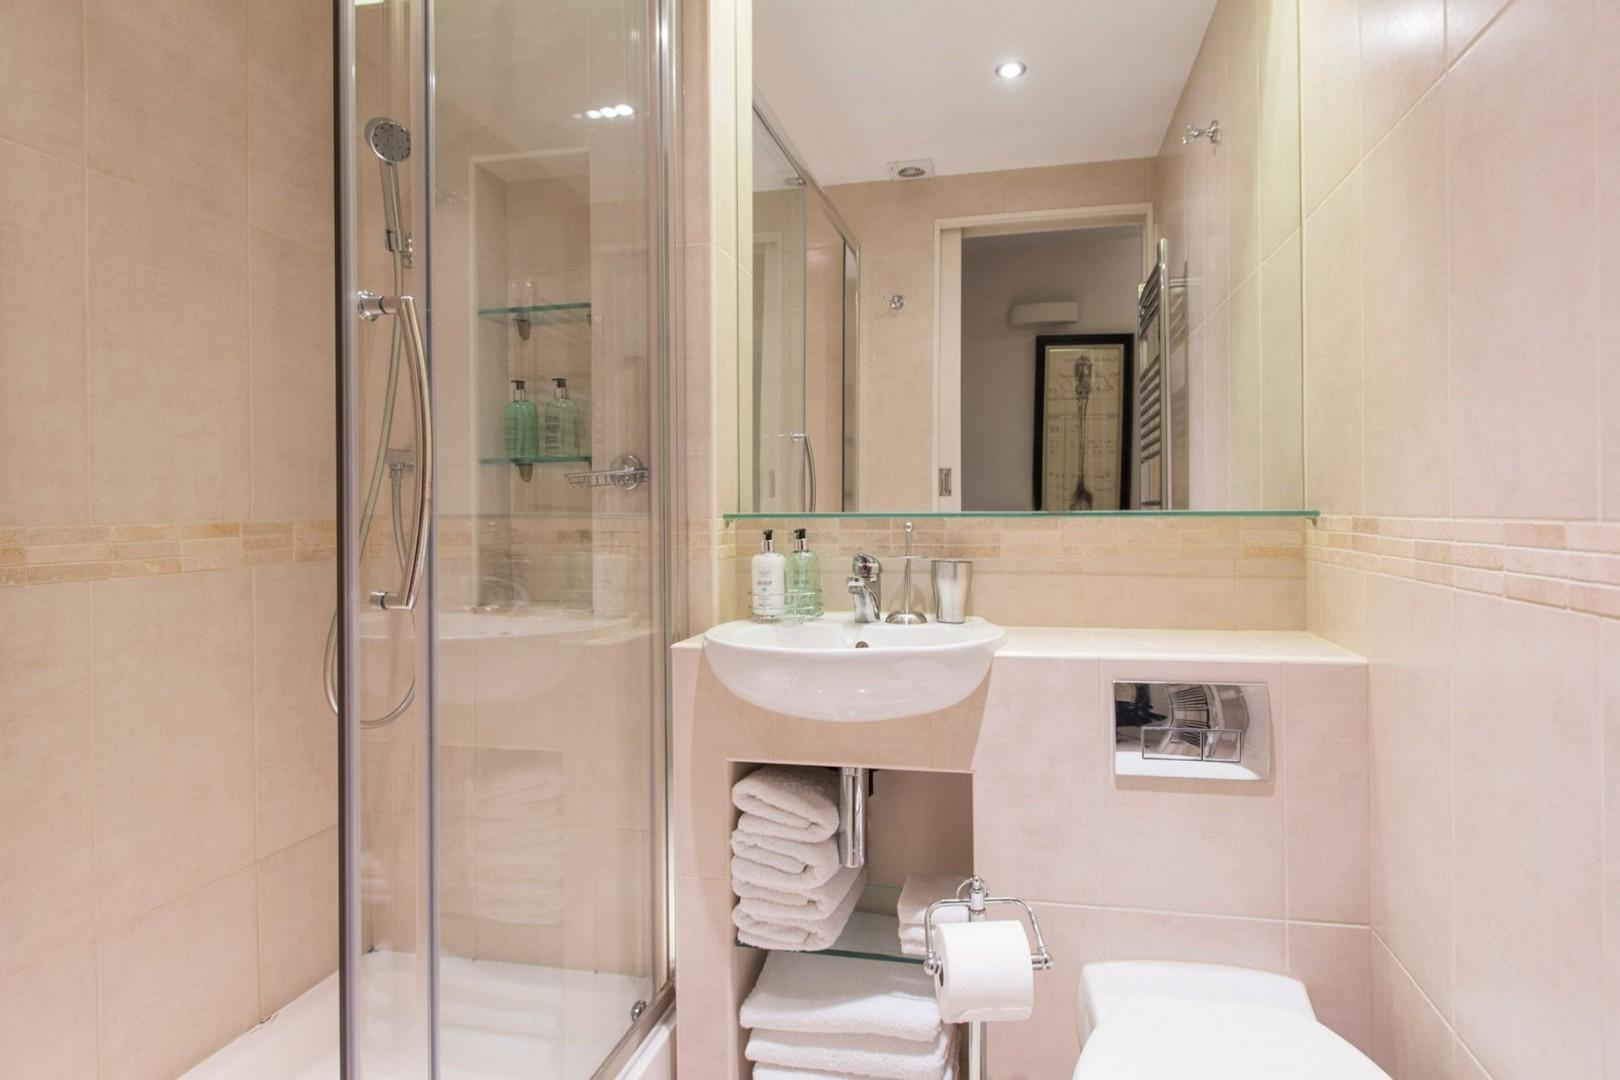 Bathroom featuring a large shower, toilet and sink